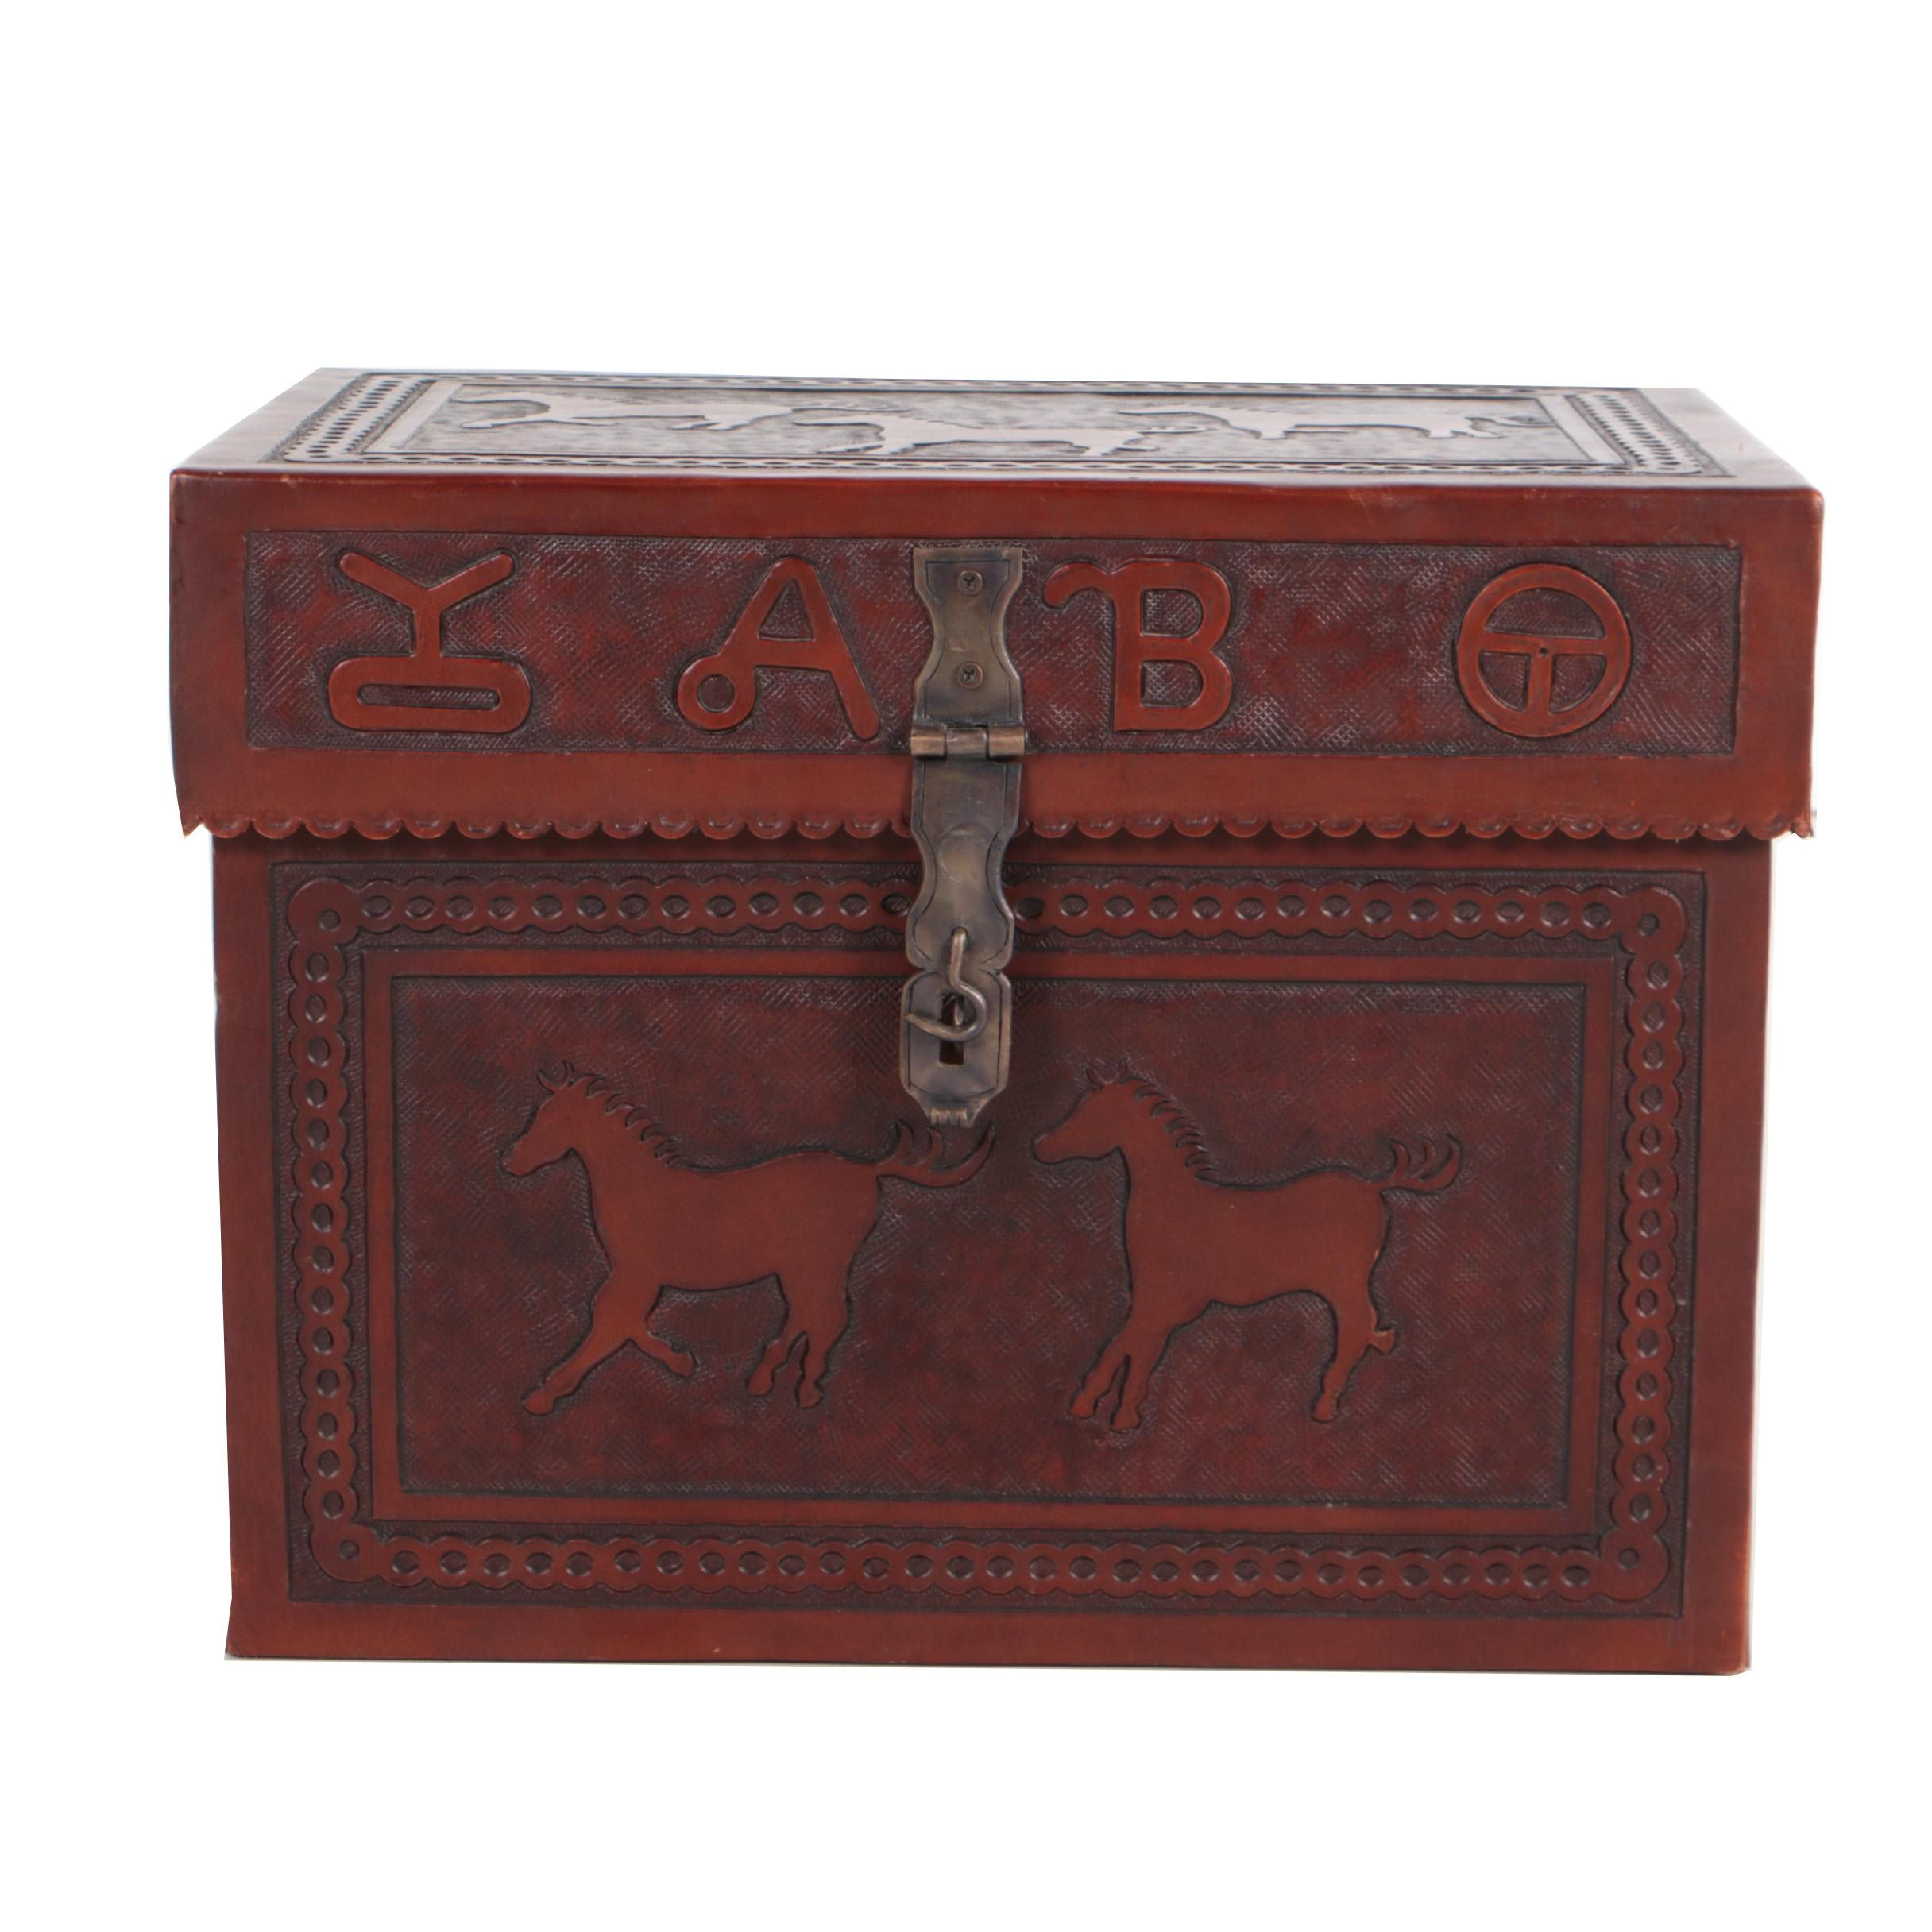 Embossed Leather and Wood Miniature Trunk